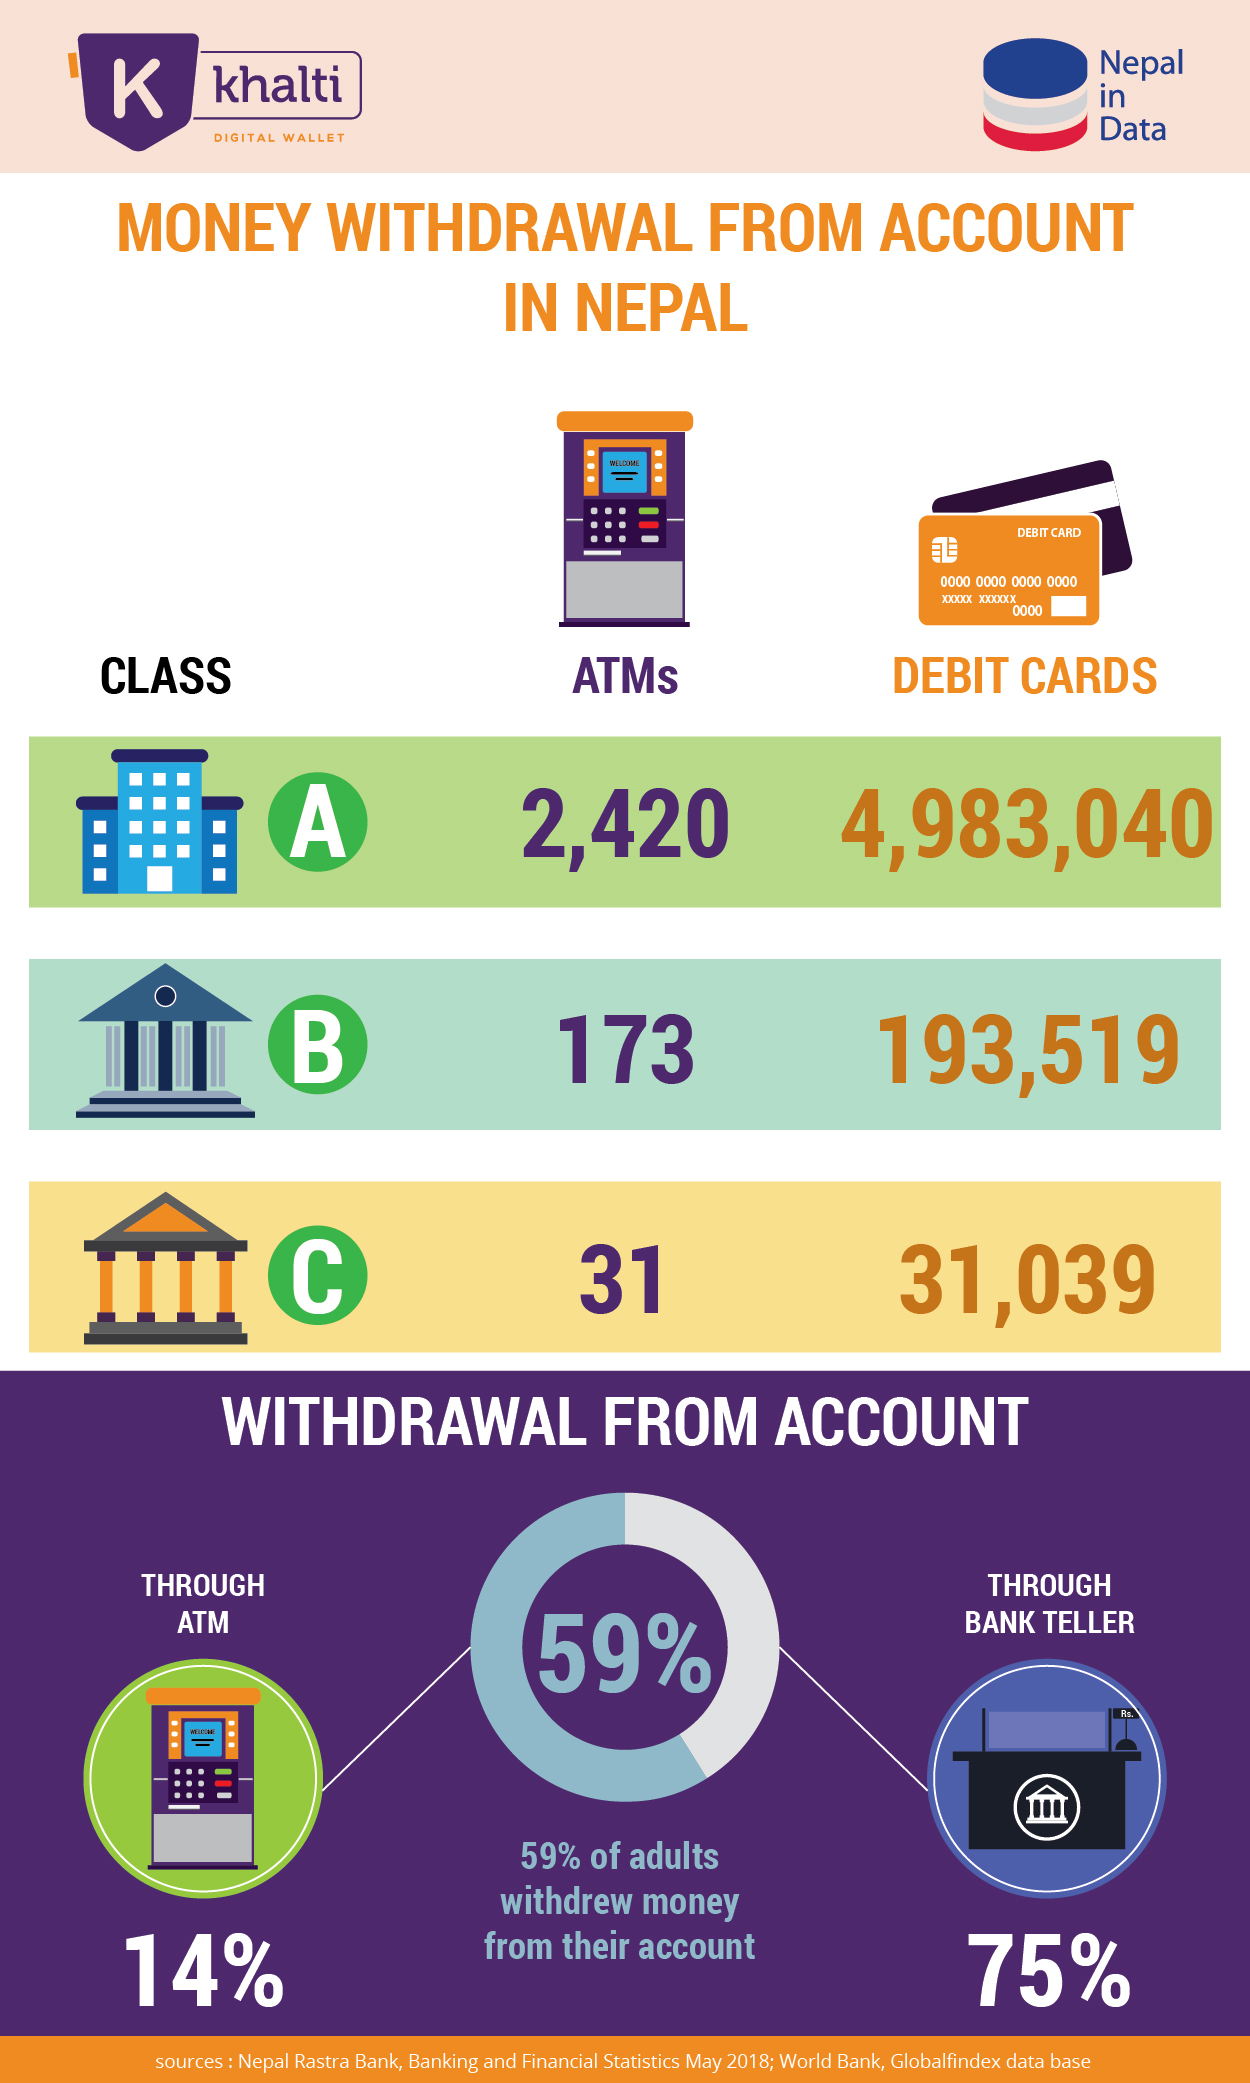 The infographics shows the status of money withdrawal from account in Nepal